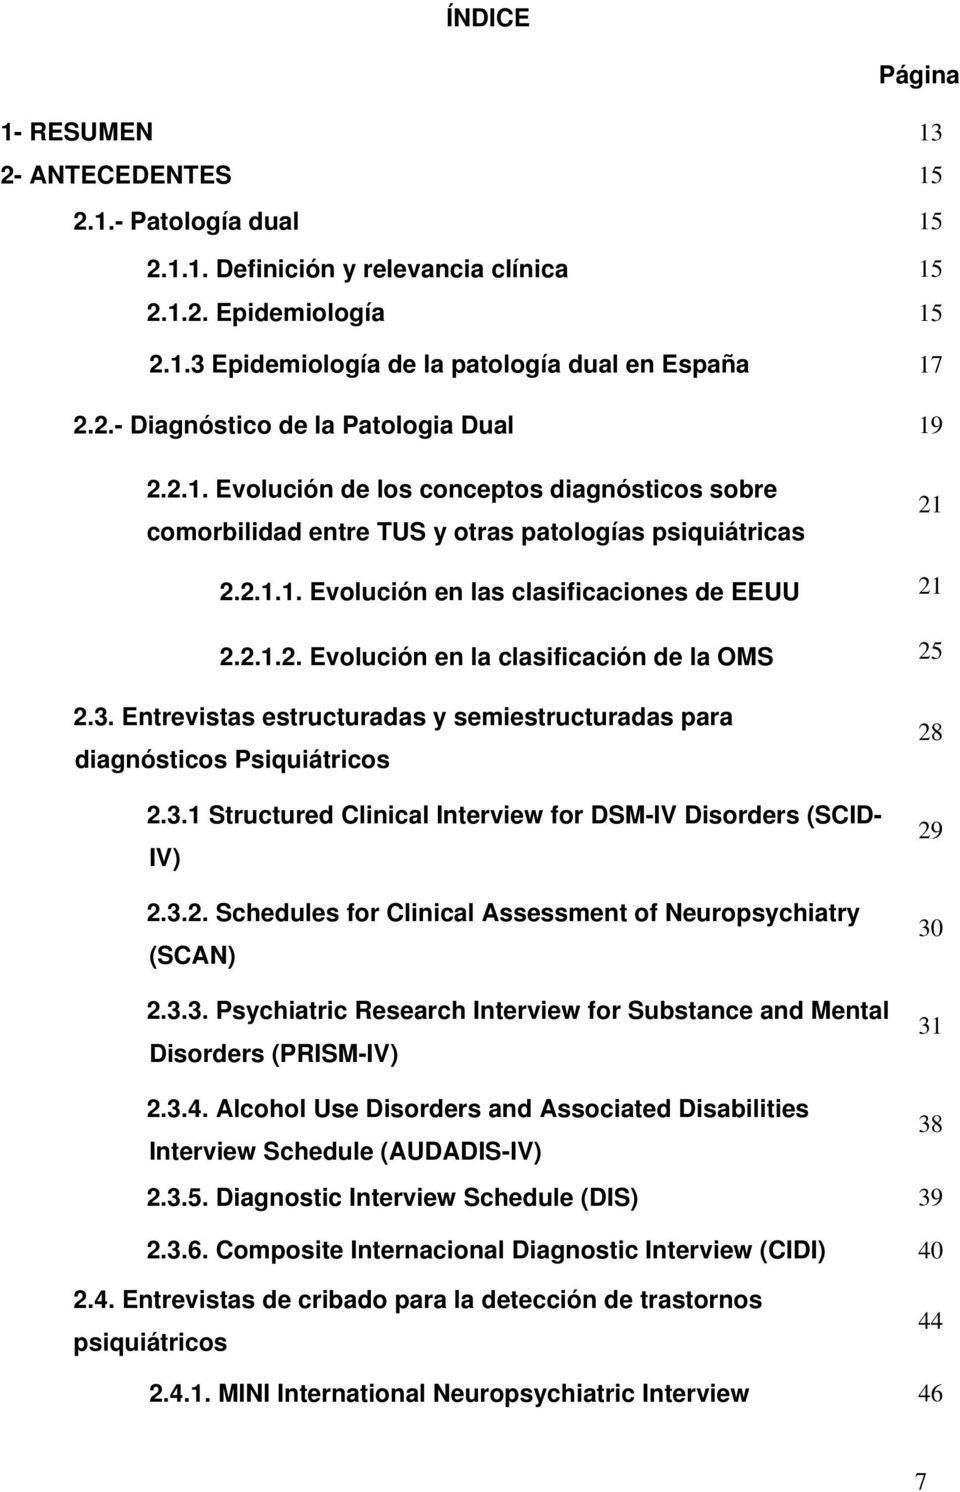 3. Entrevistas estructuradas y semiestructuradas para diagnósticos Psiquiátricos 2.3.1 Structured Clinical Interview for DSM-IV Disorders (SCID- IV) 2.3.2. Schedules for Clinical Assessment of Neuropsychiatry (SCAN) 2.